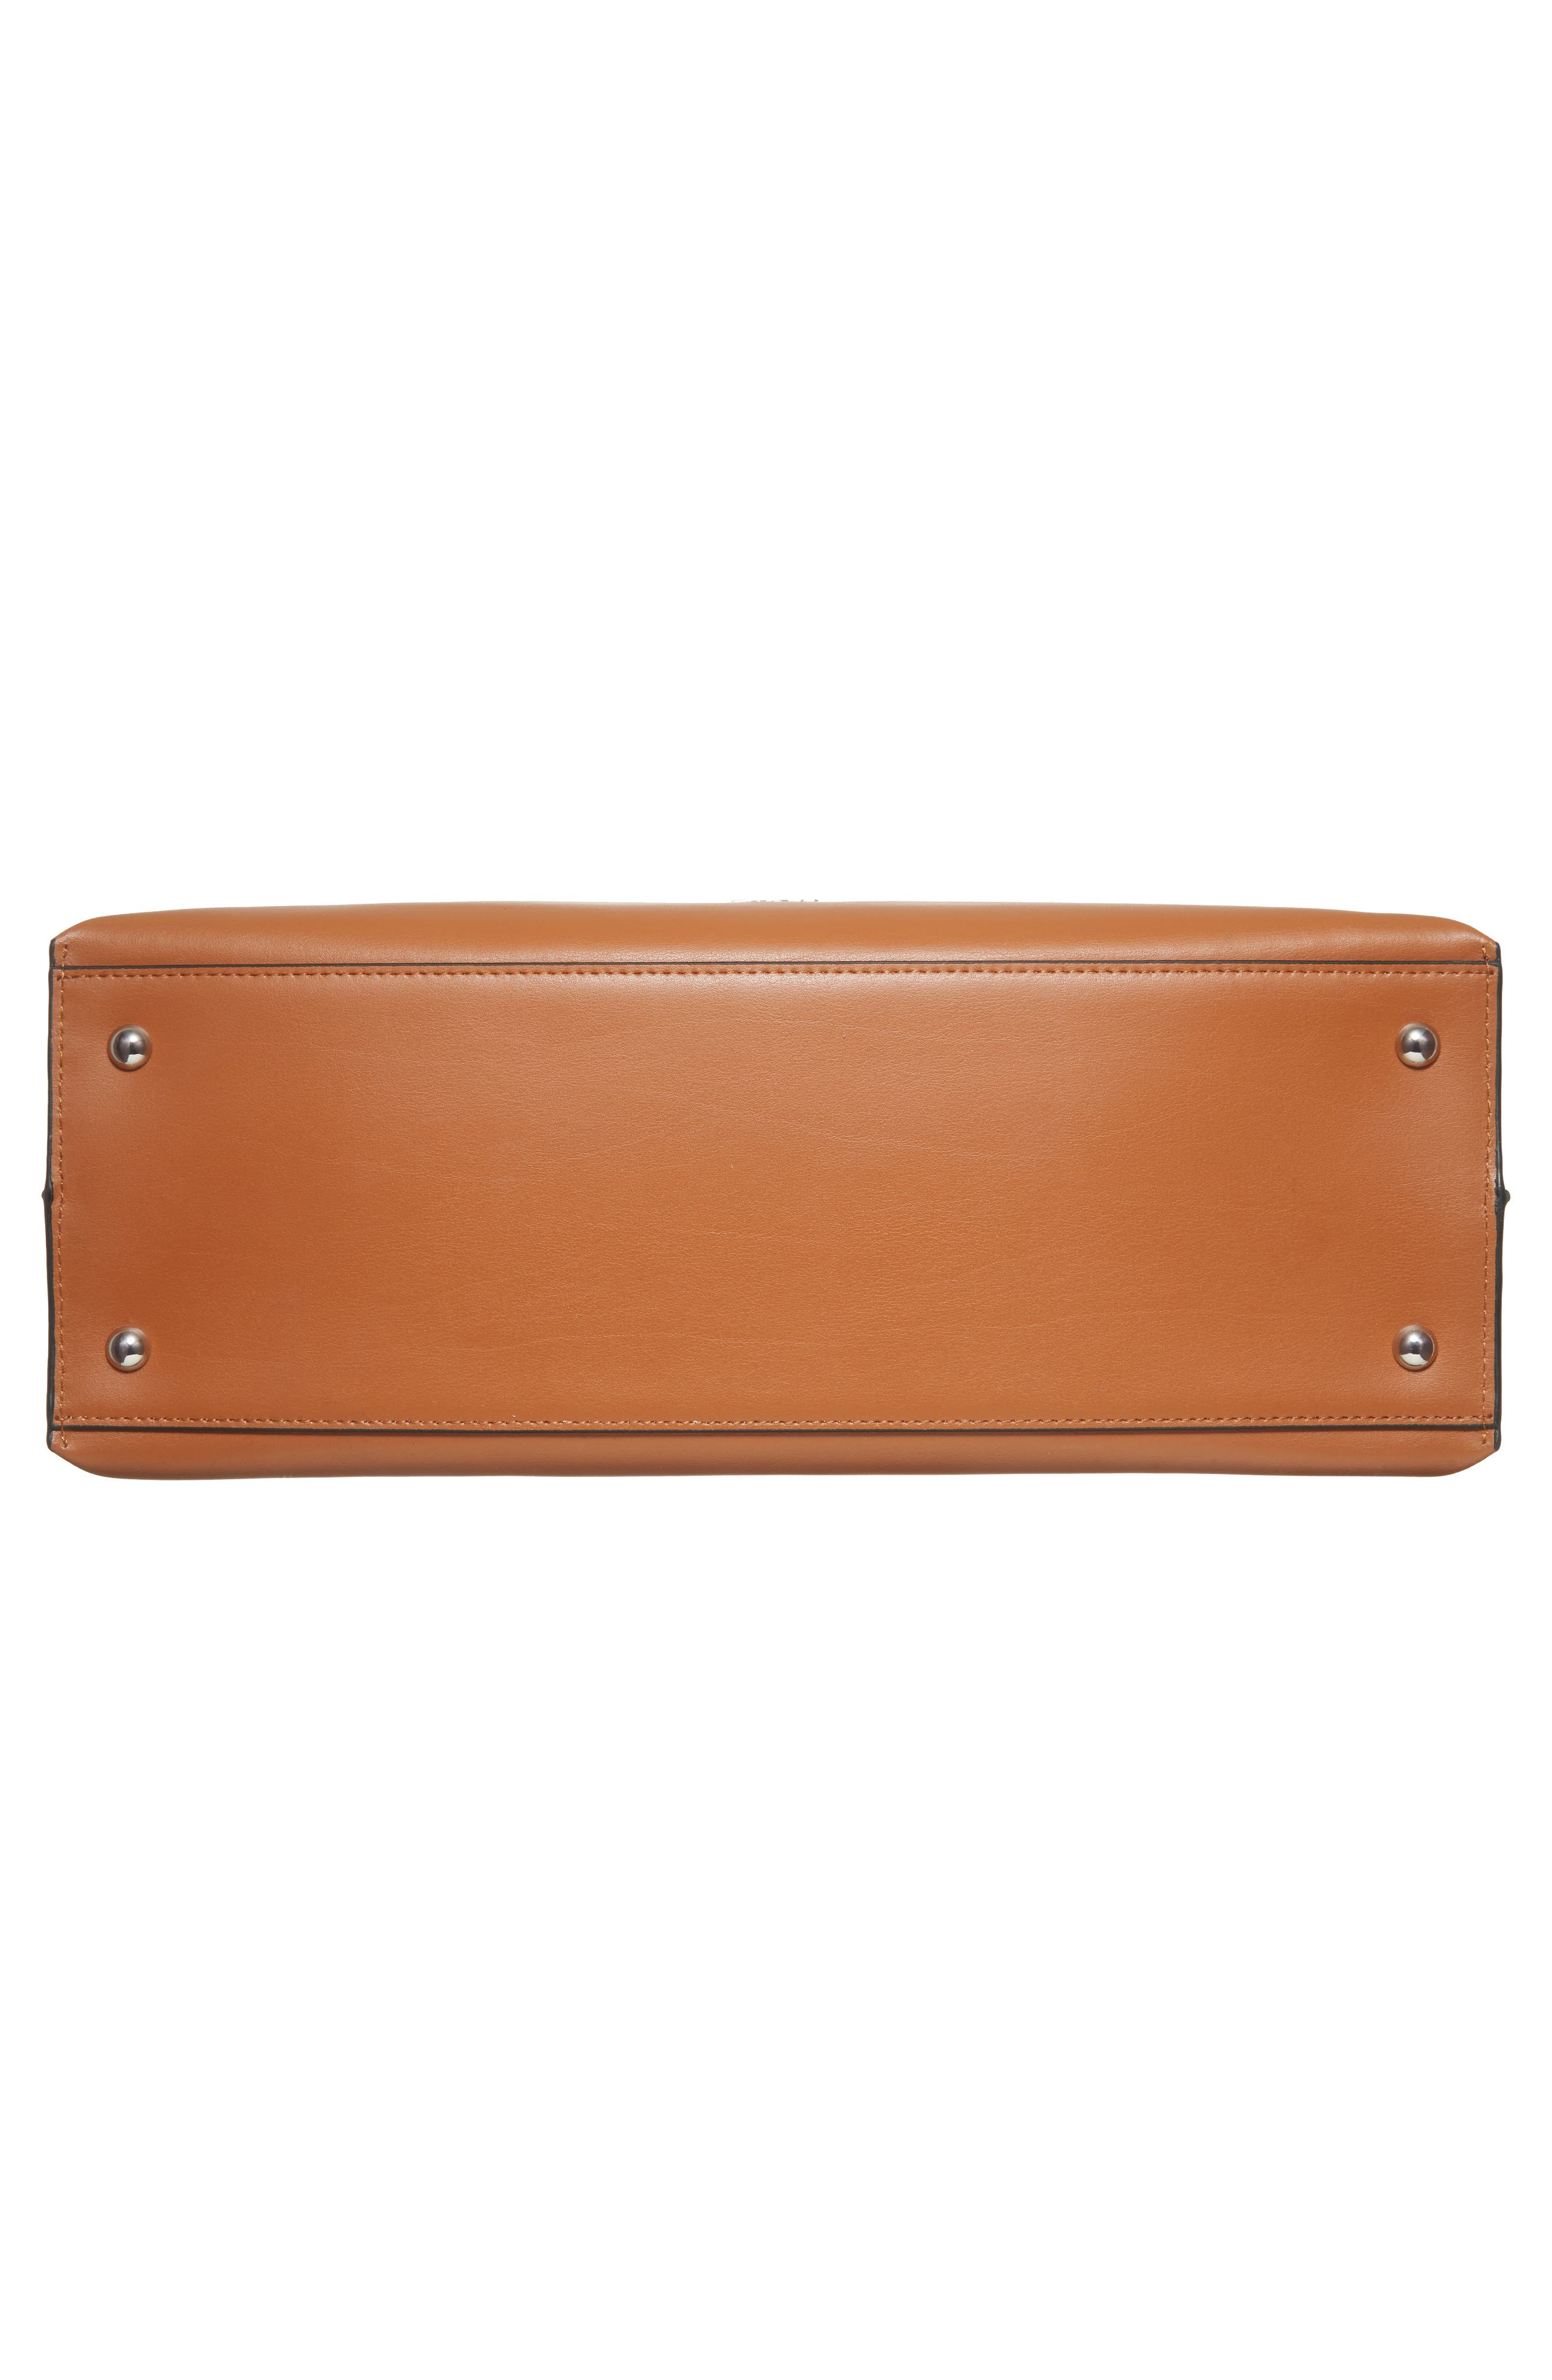 LODIS Silicon Valley - Lorrain RFID Leather Satchel,                             Alternate thumbnail 6, color,                             Toffee/ Taupe